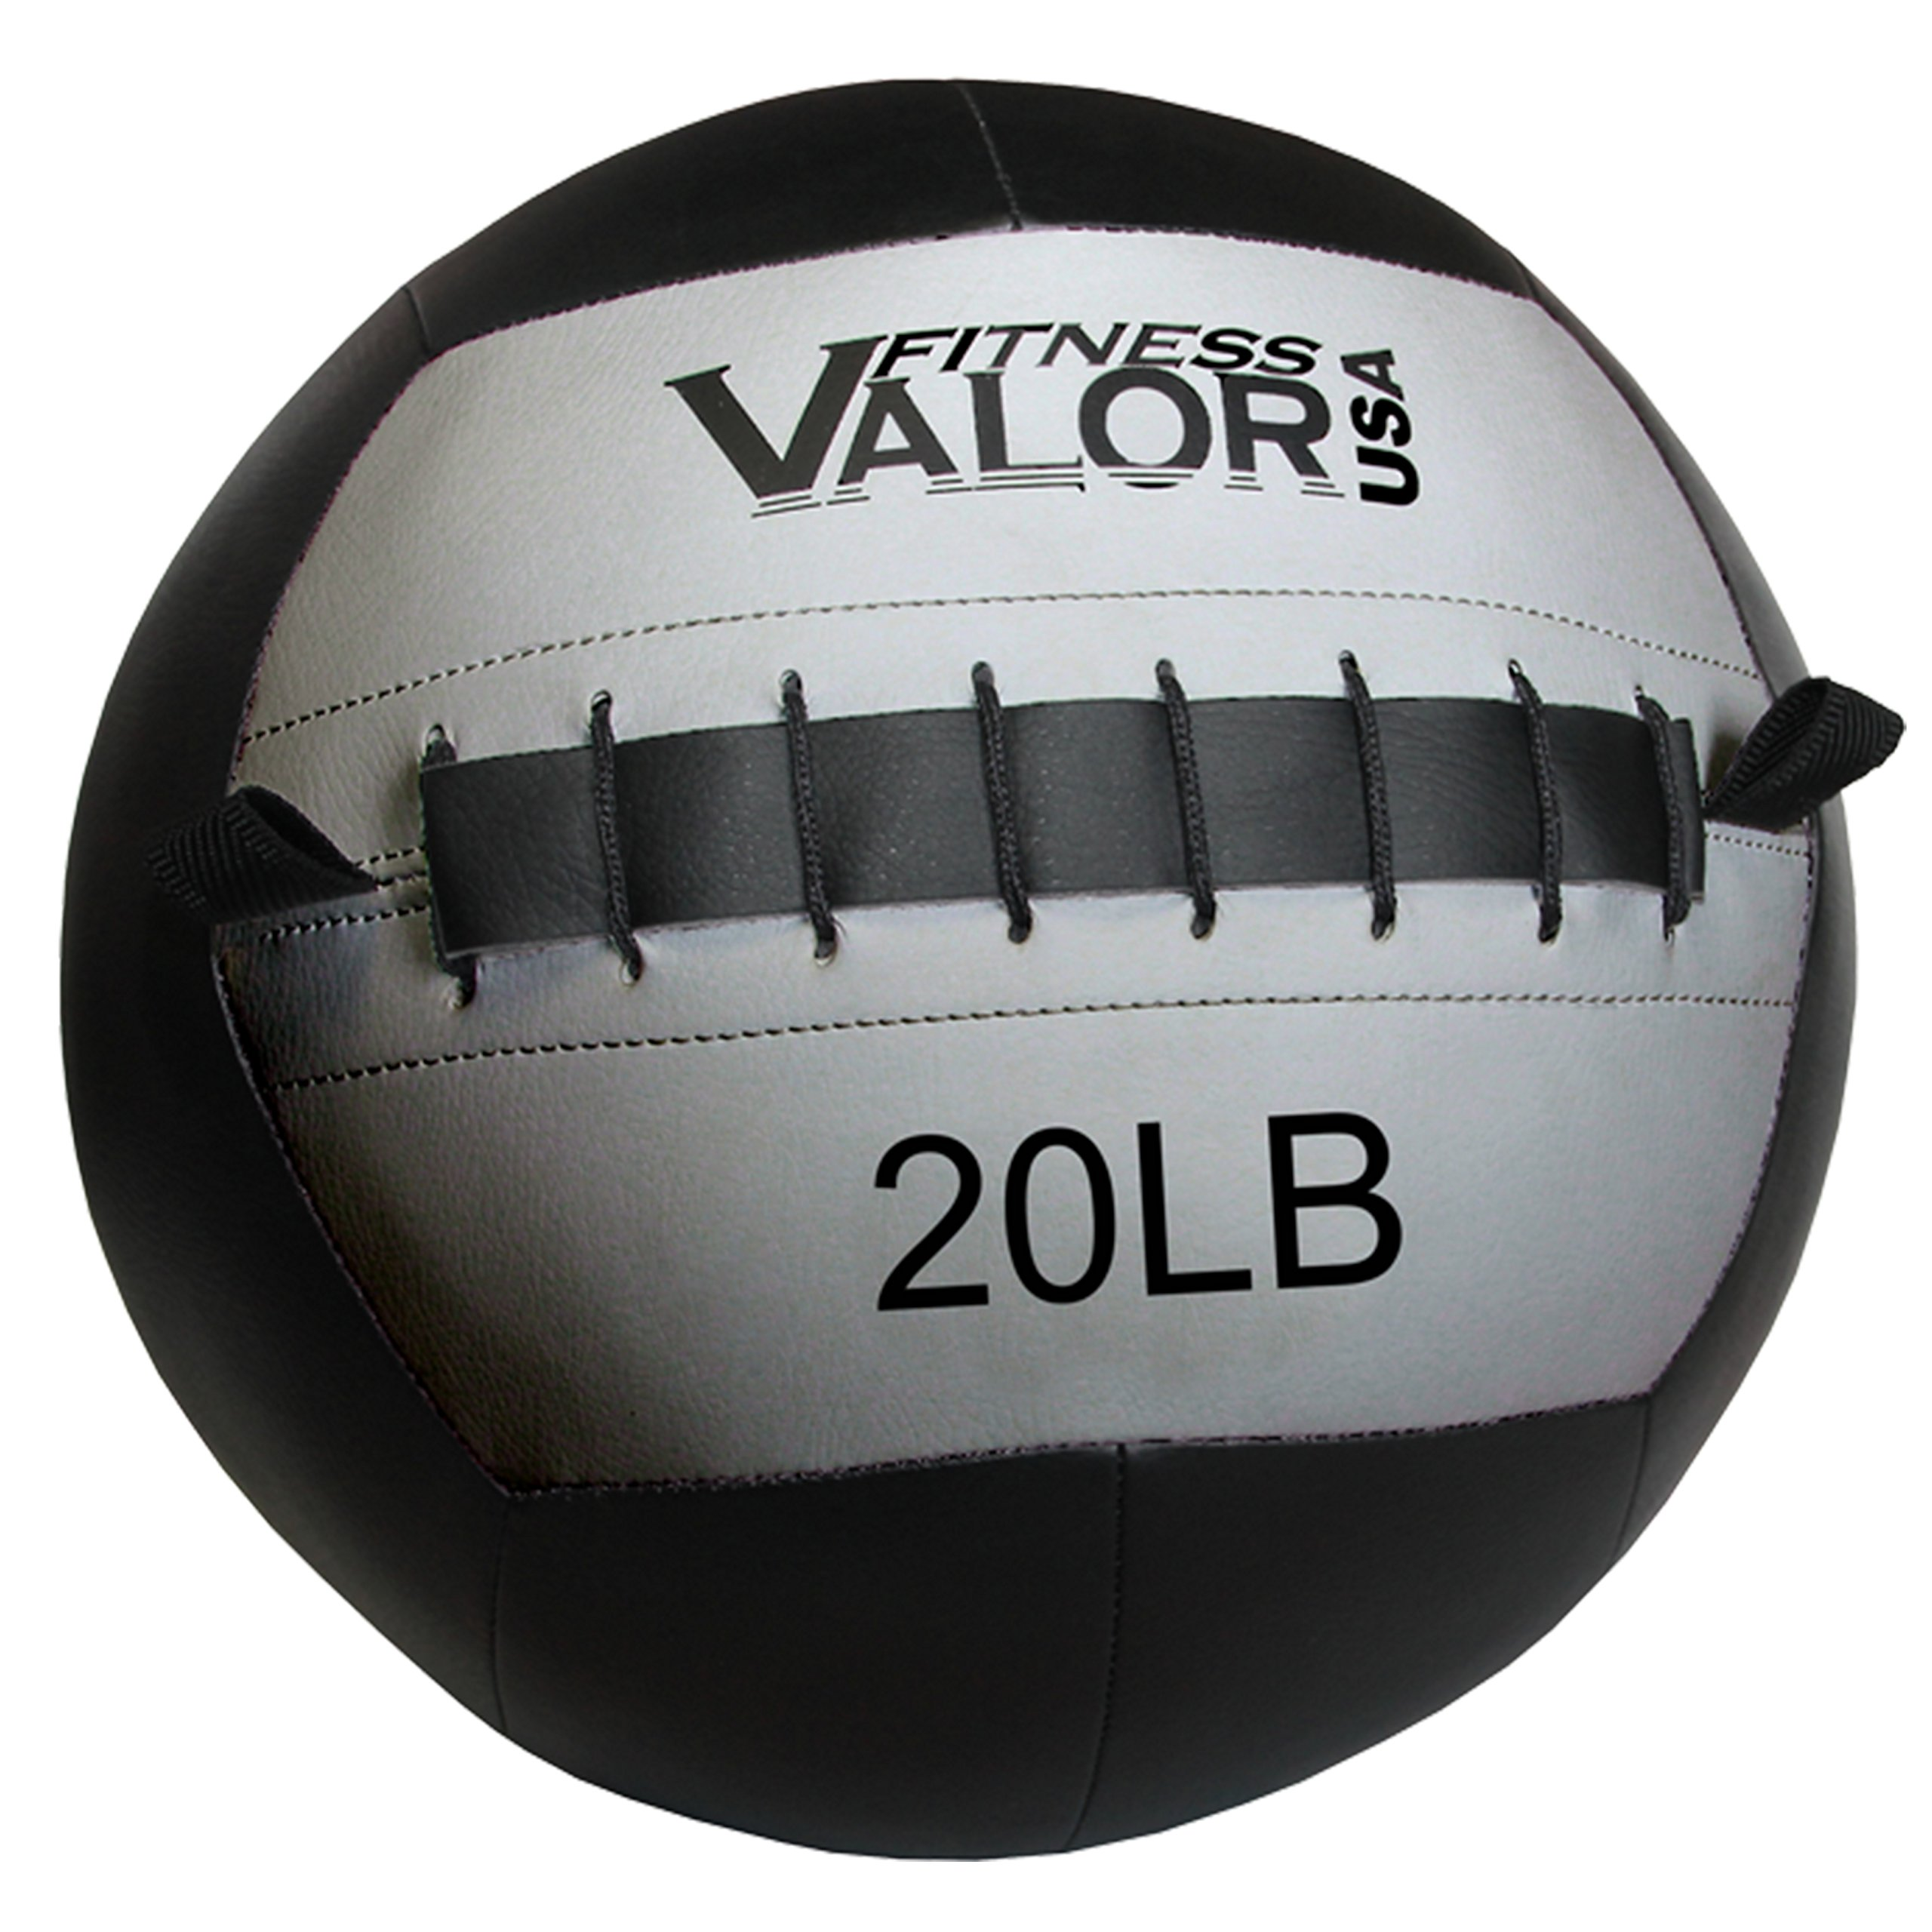 Valor Fitness WB-20 Wall Ball, 20 Lb by Valor Fitness